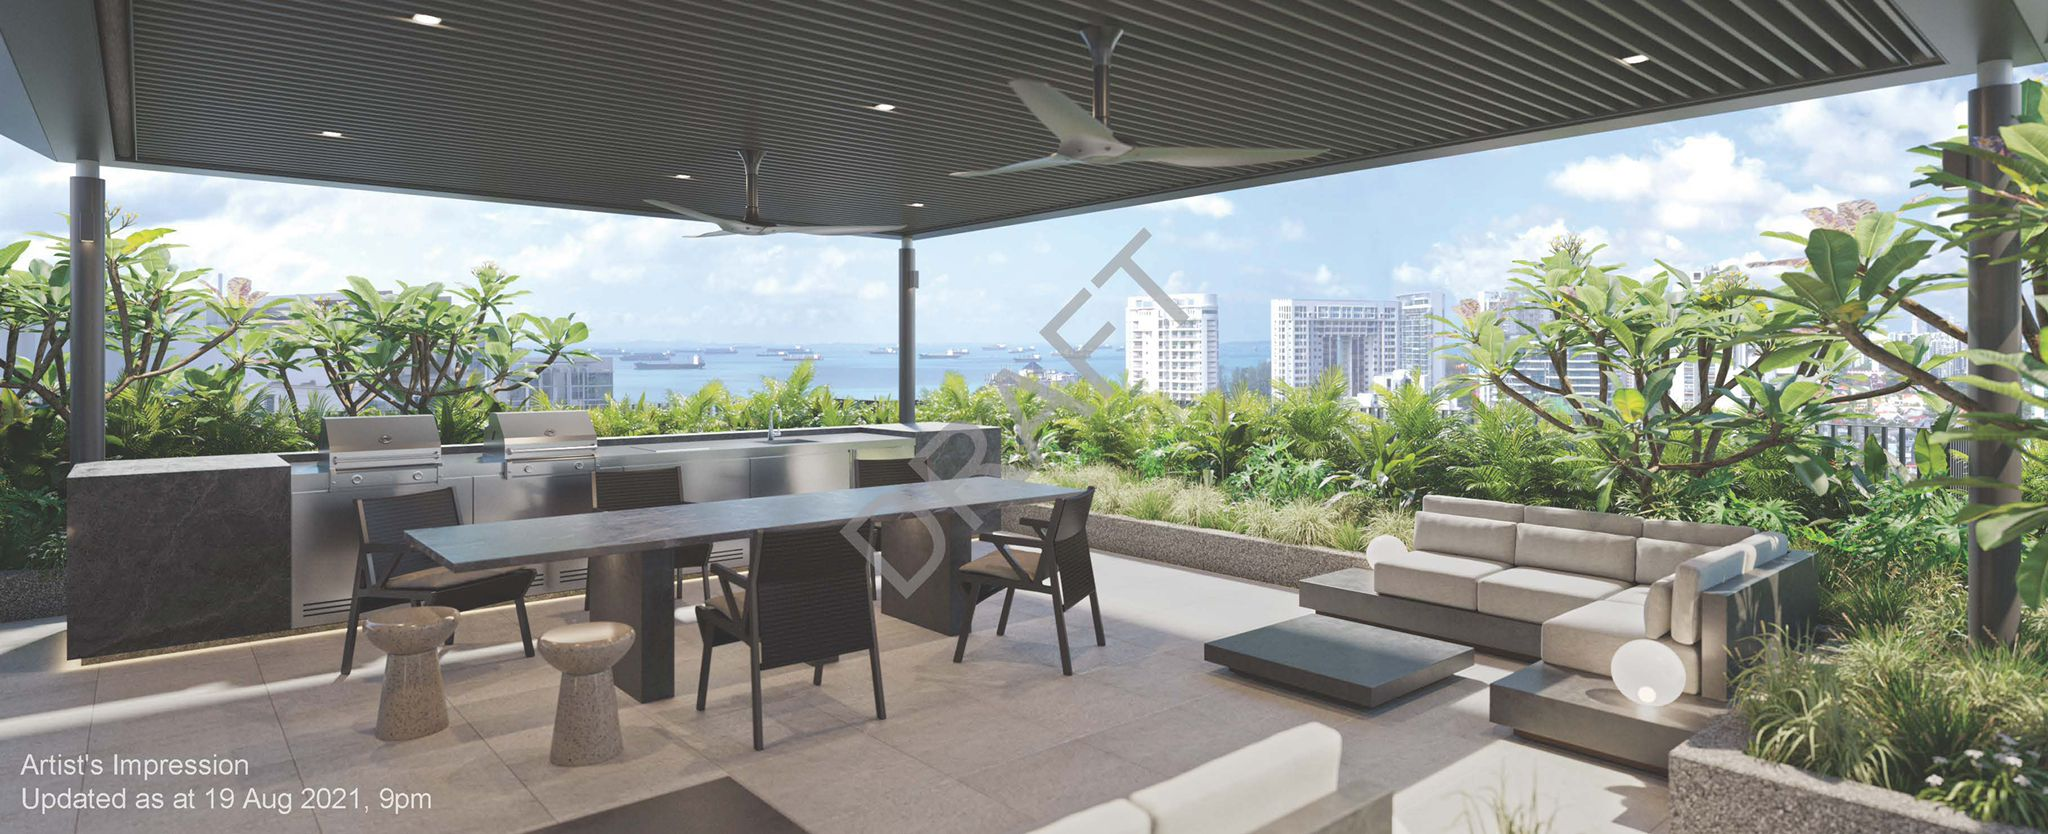 Amber-Sea-Roof-Terrace-Dining-Pavilion